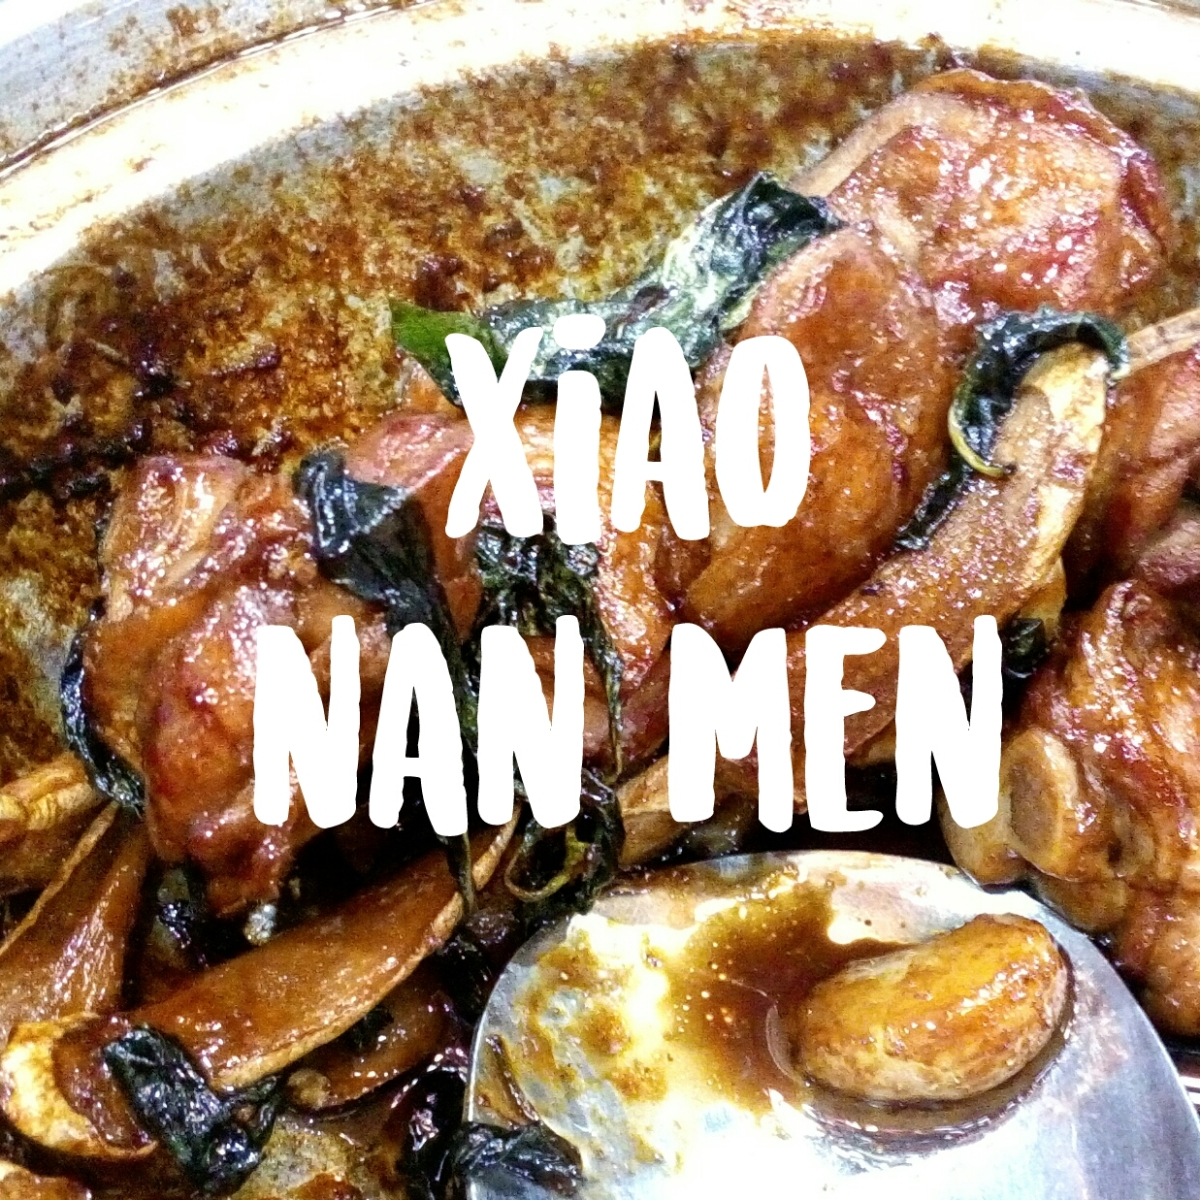 Xiao Nan Men, Banawe